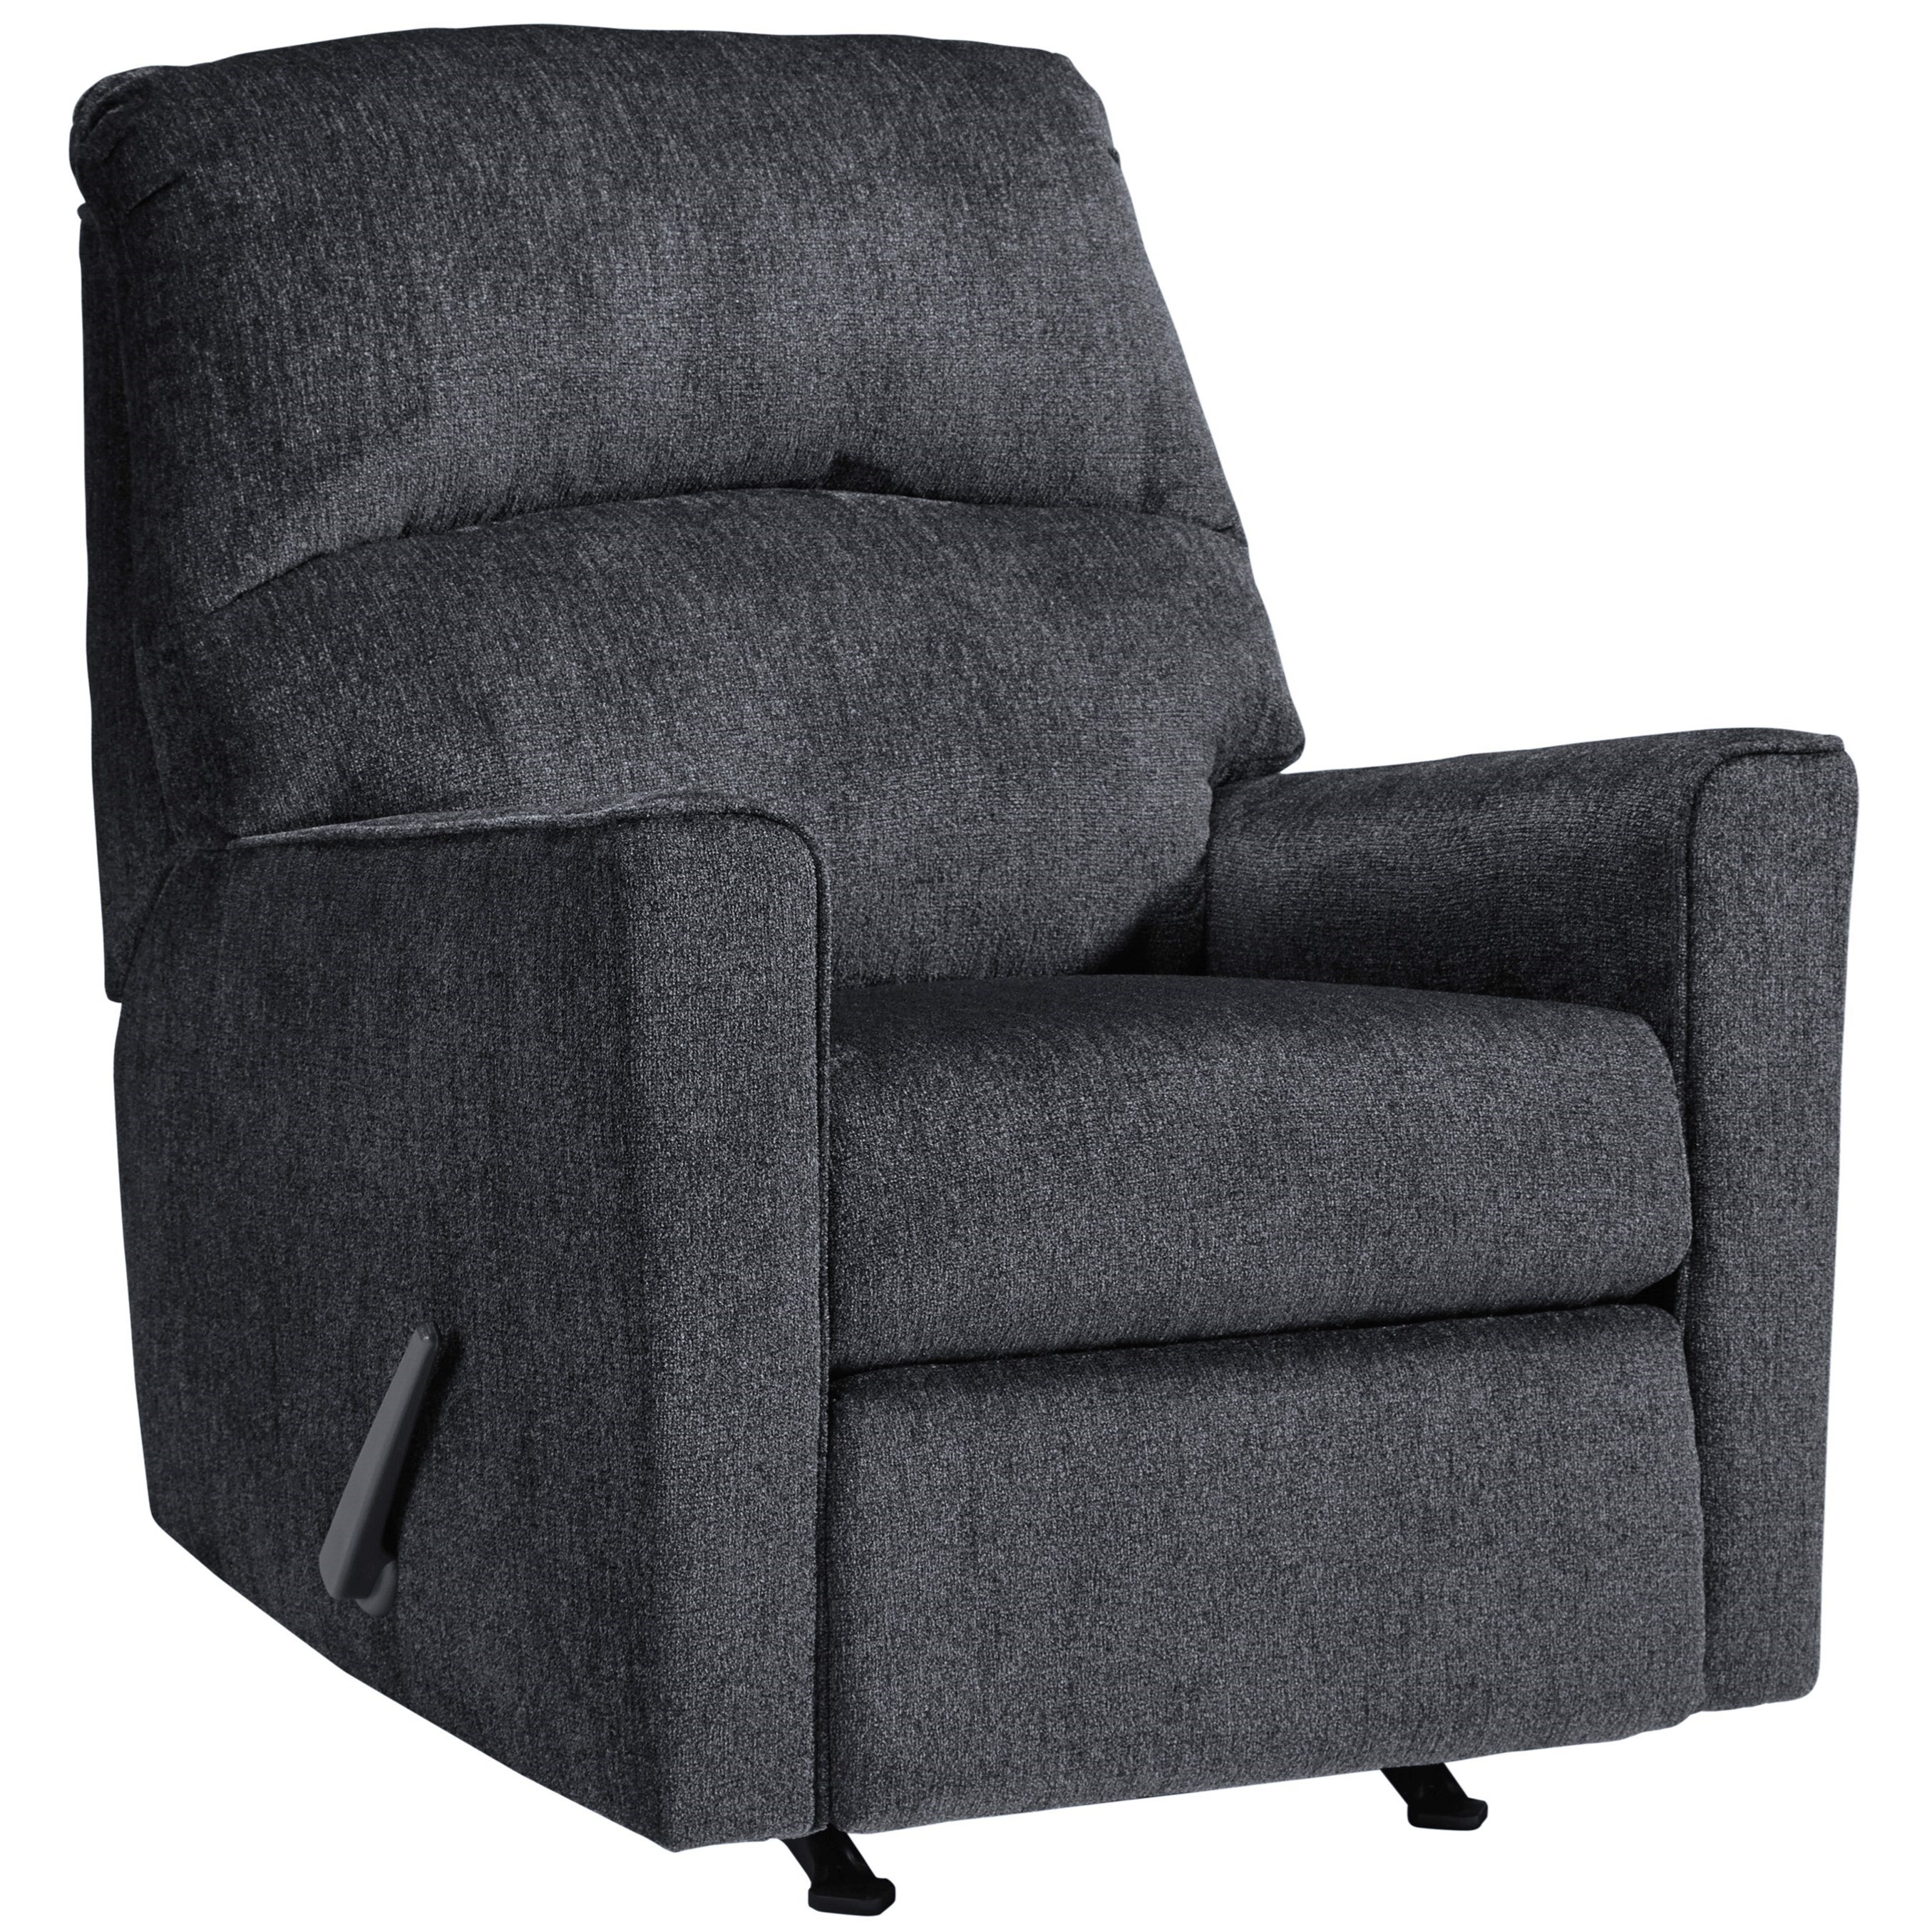 Altari Rocker Recliner by Signature Design by Ashley at Value City Furniture